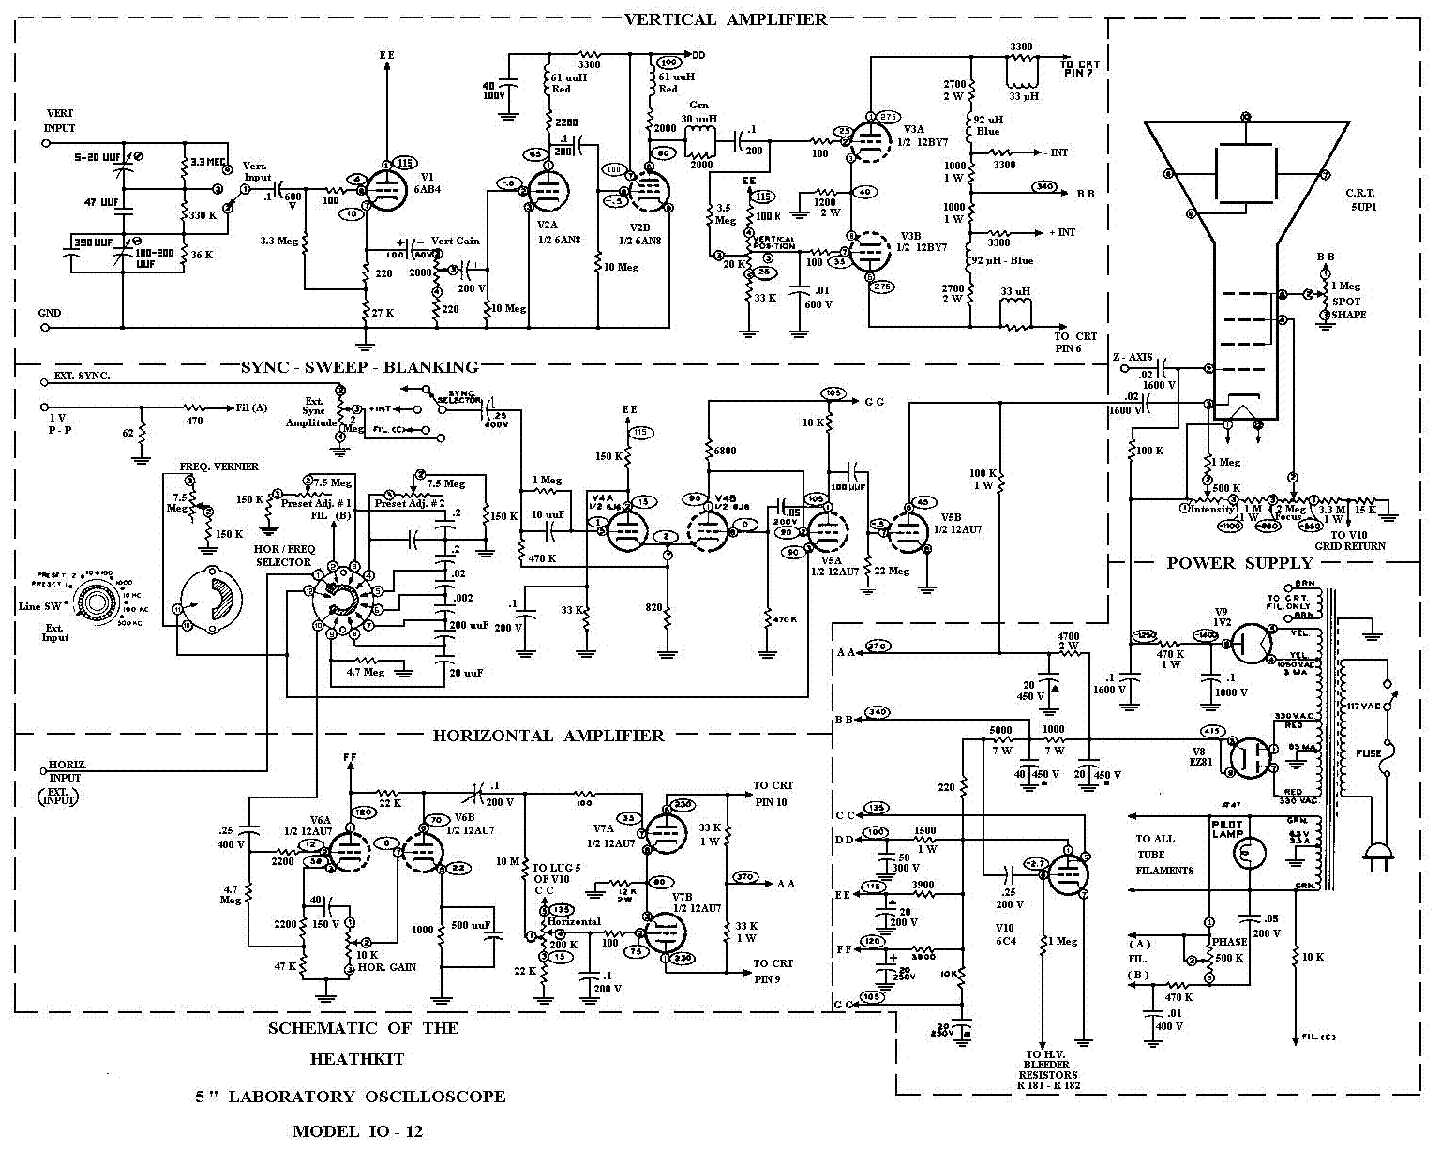 heathkit sb 620 manual pdf